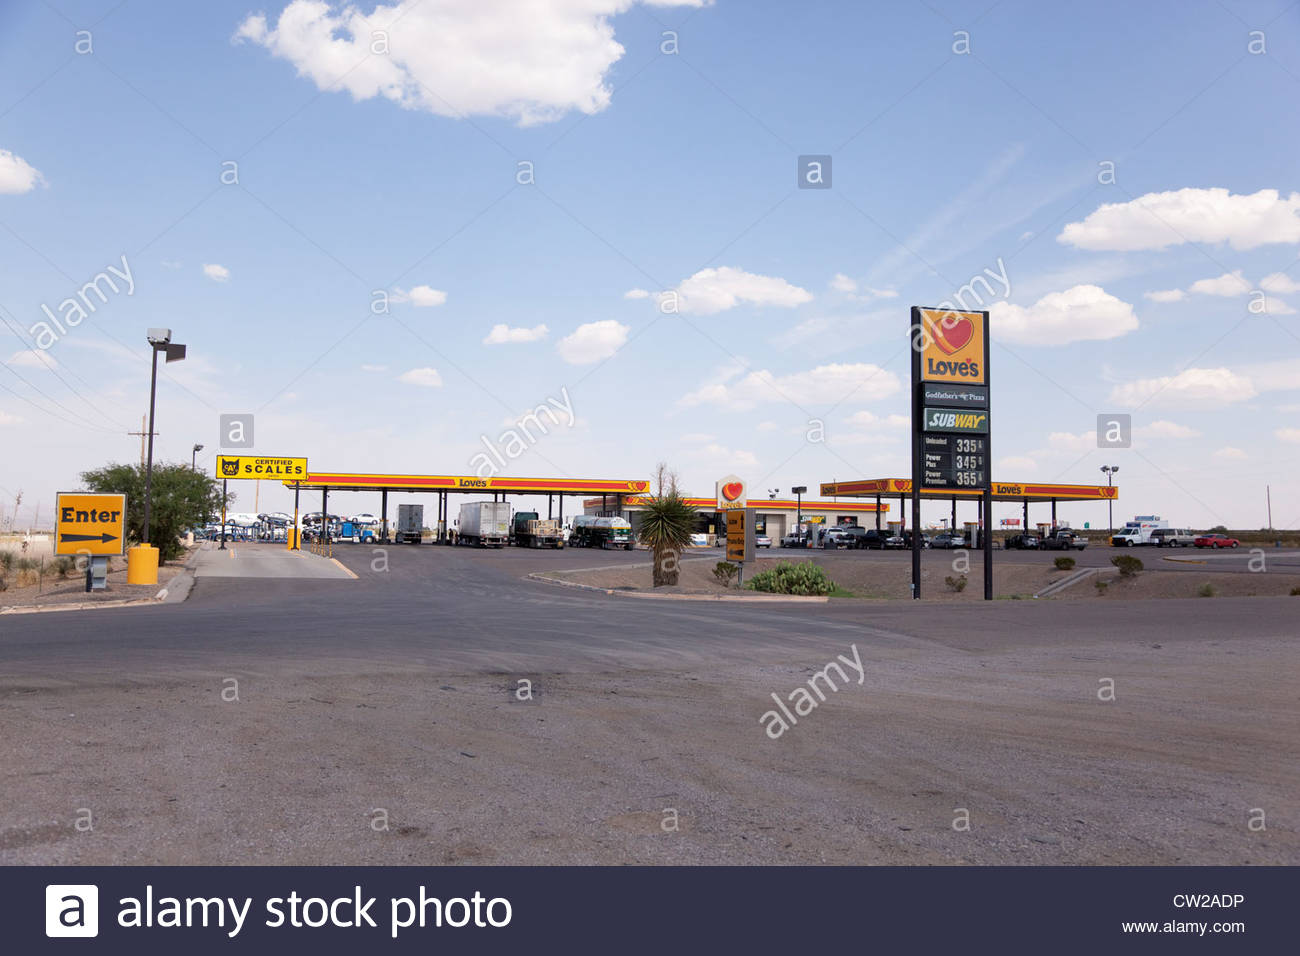 Love's Truck Stop Lordsburg New Mexico 4 people visible - Stock Image